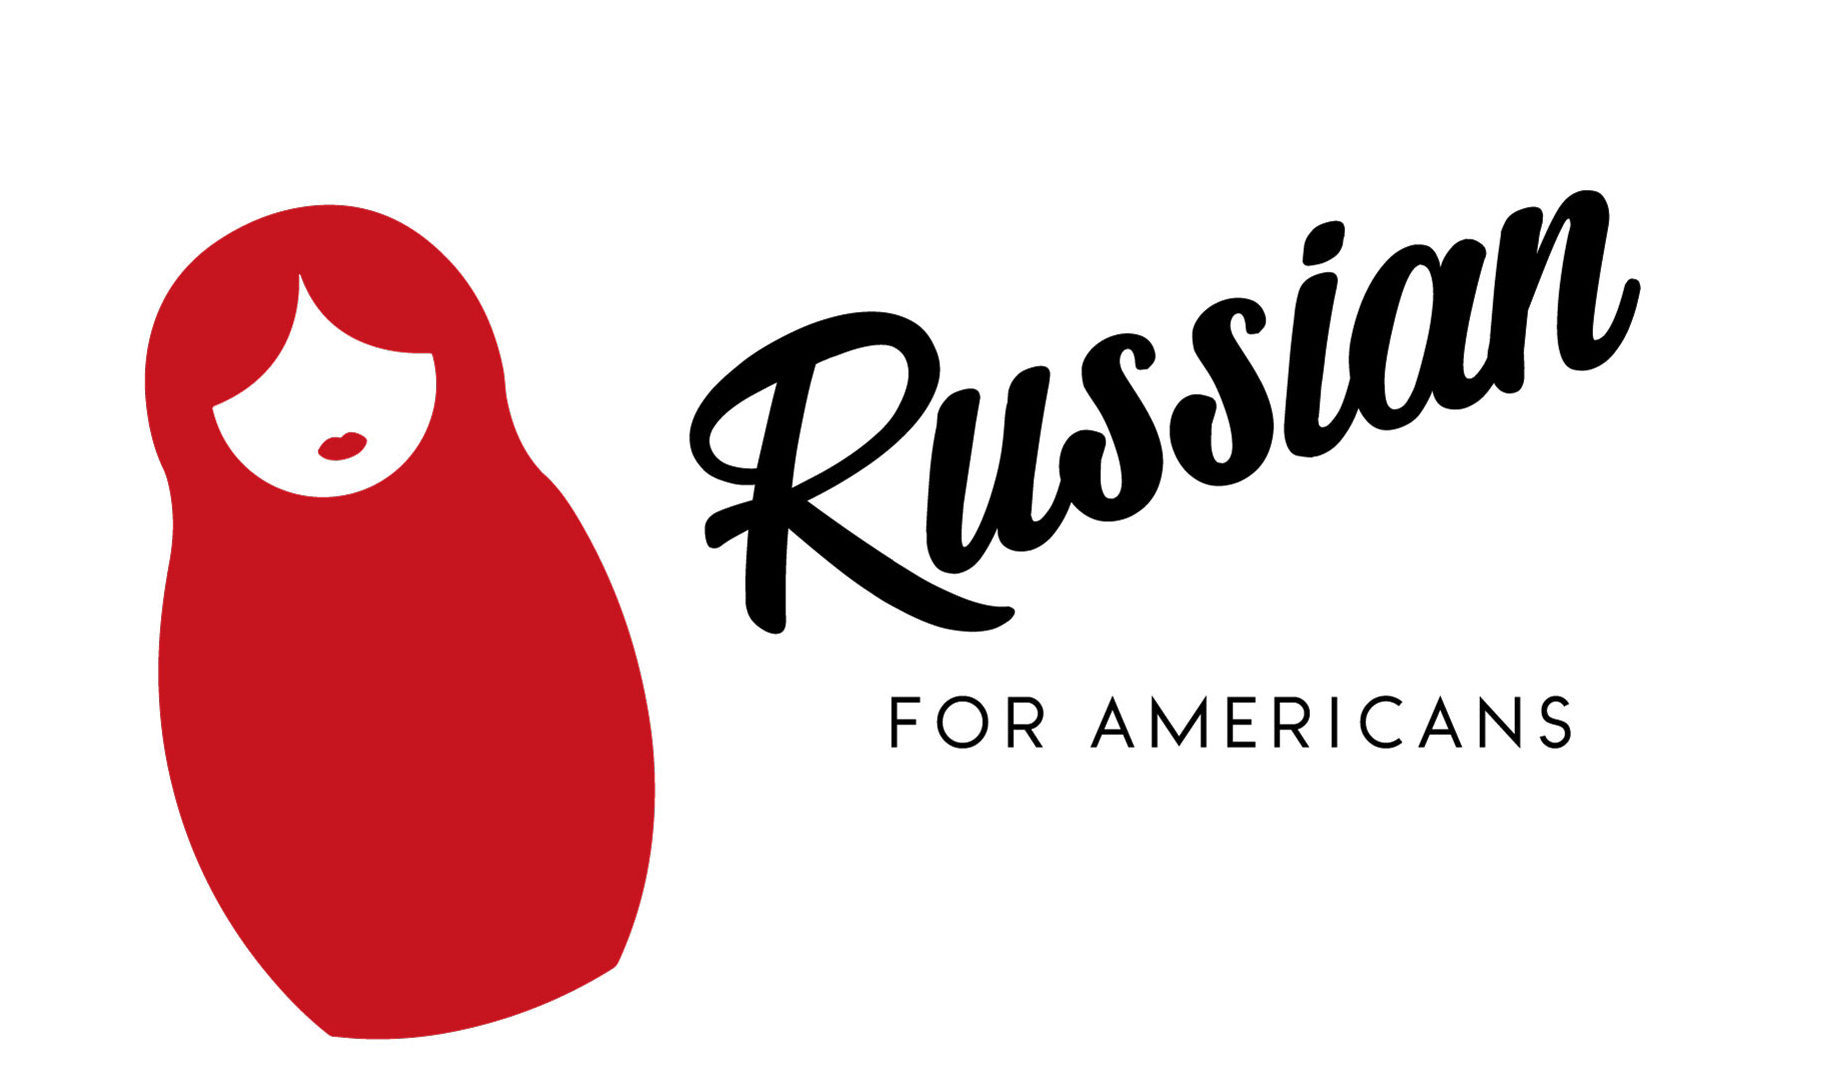 Russian for Americans